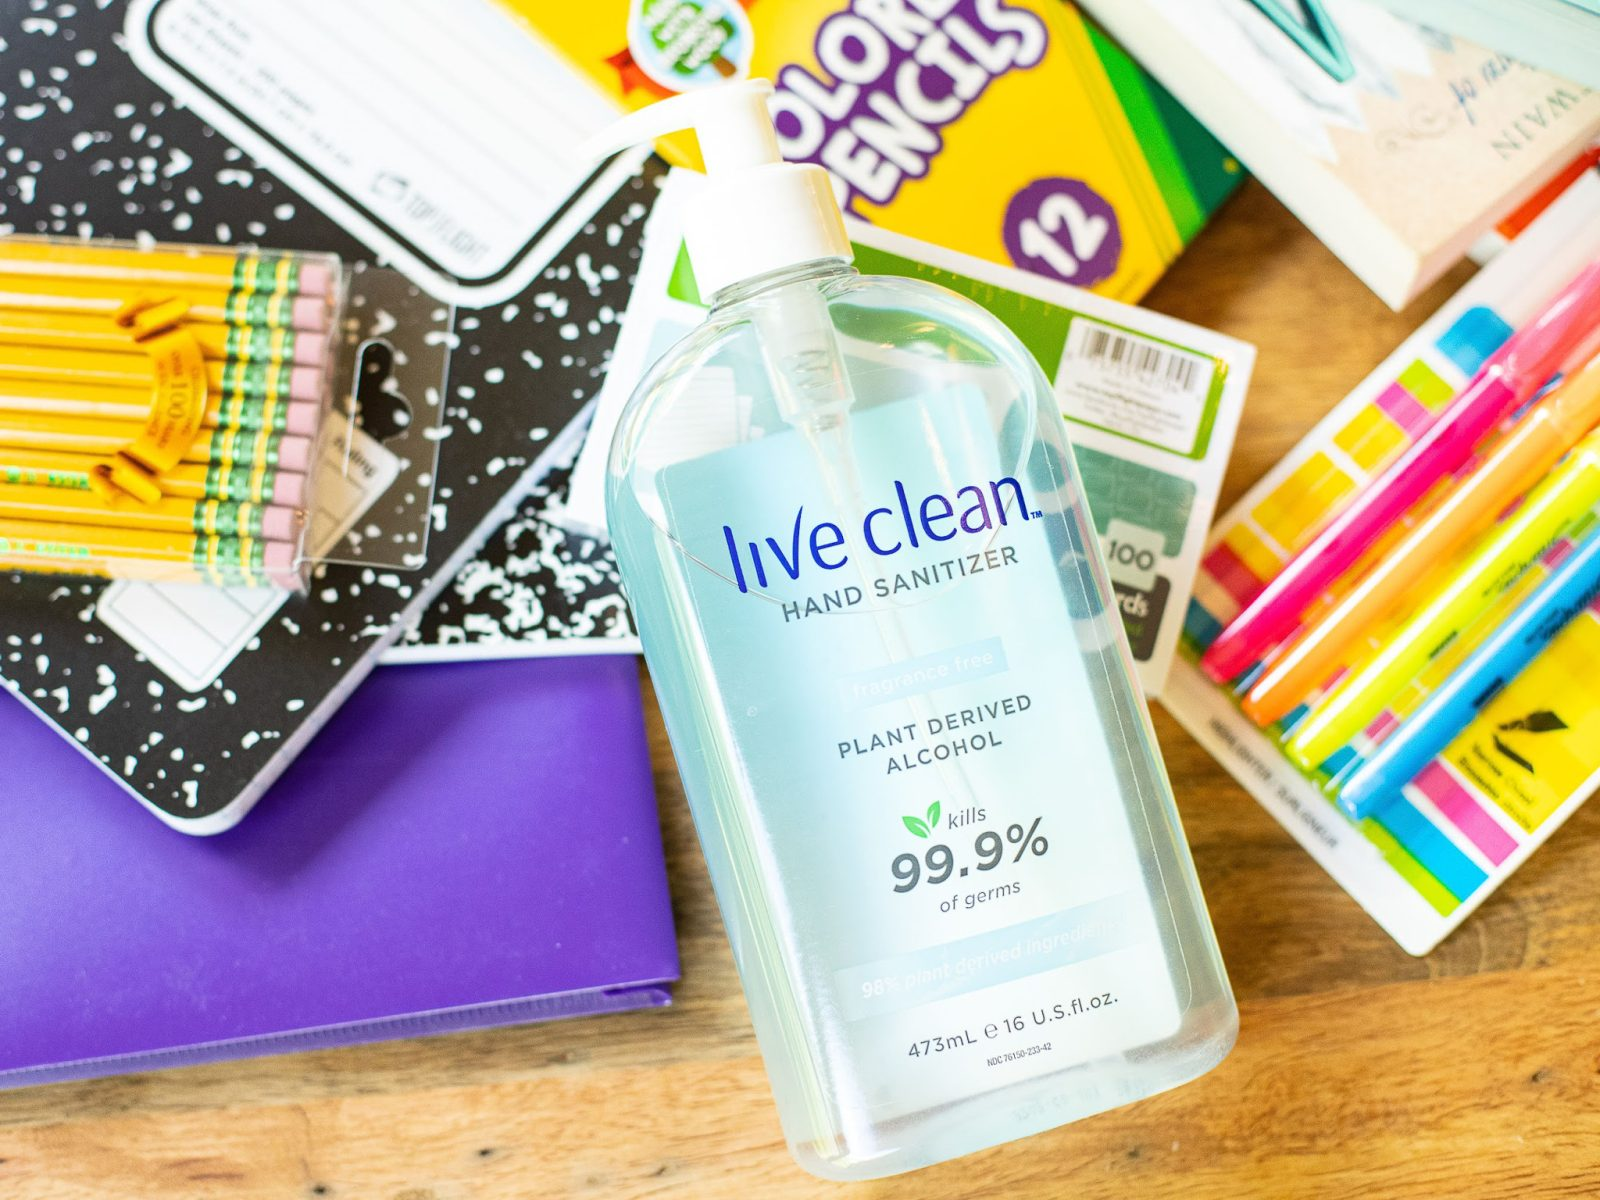 Stock Up On Live Clean Products At Publix + Enter For A Chance To Win One Of FIVE $100 Publix Gift Cards on I Heart Publix